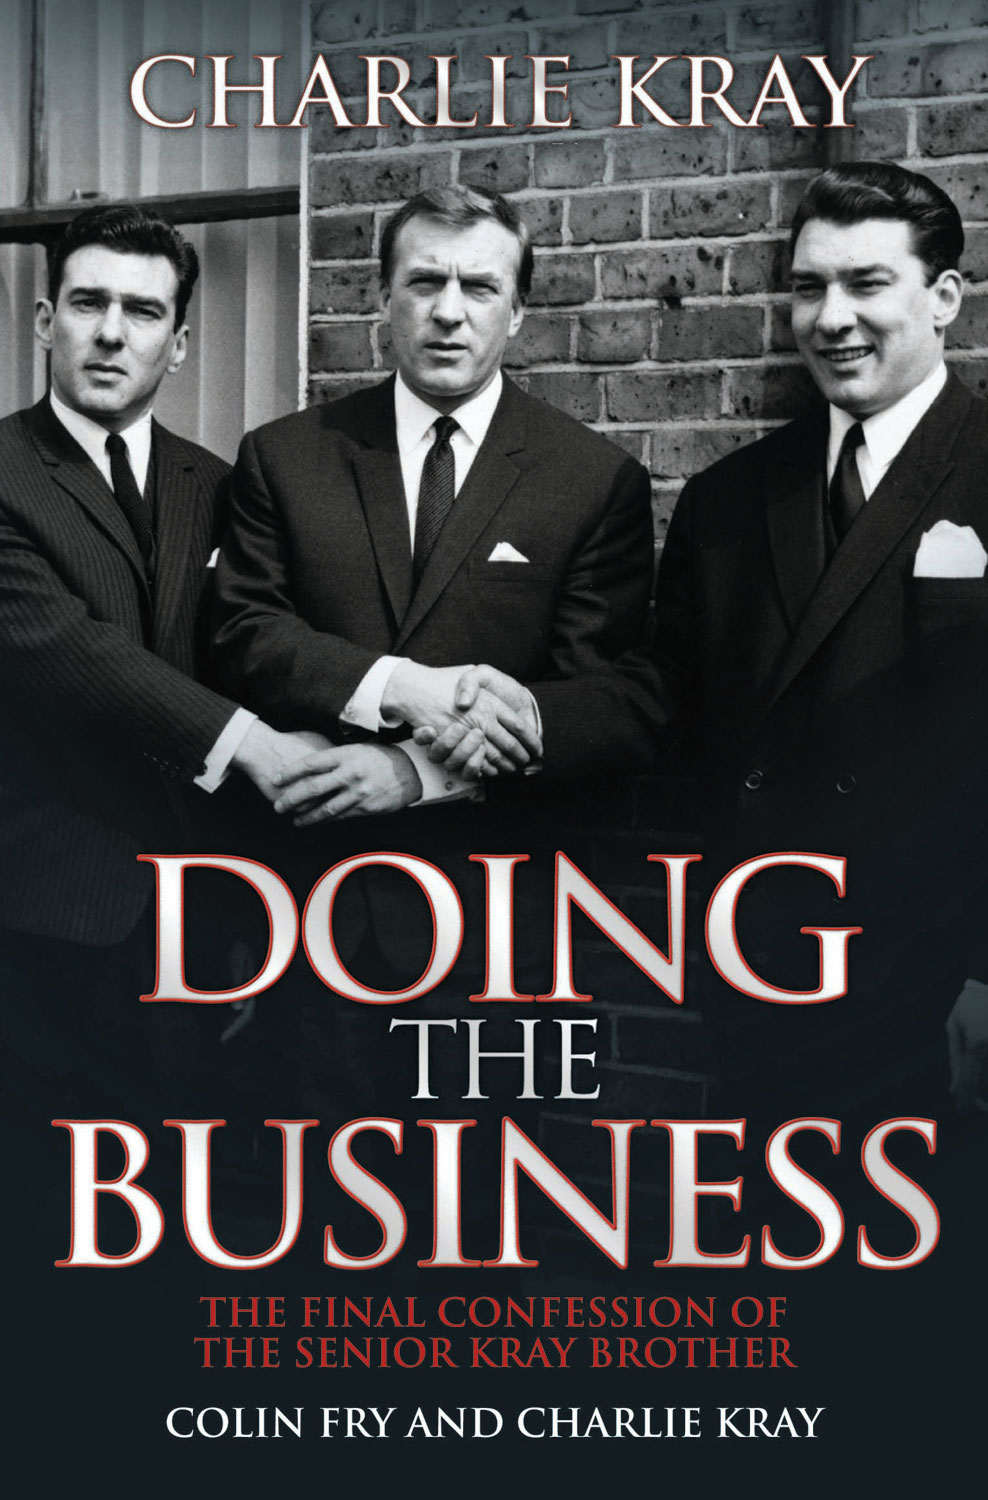 Doing the Business By: Charlie Kray,Colin Fry